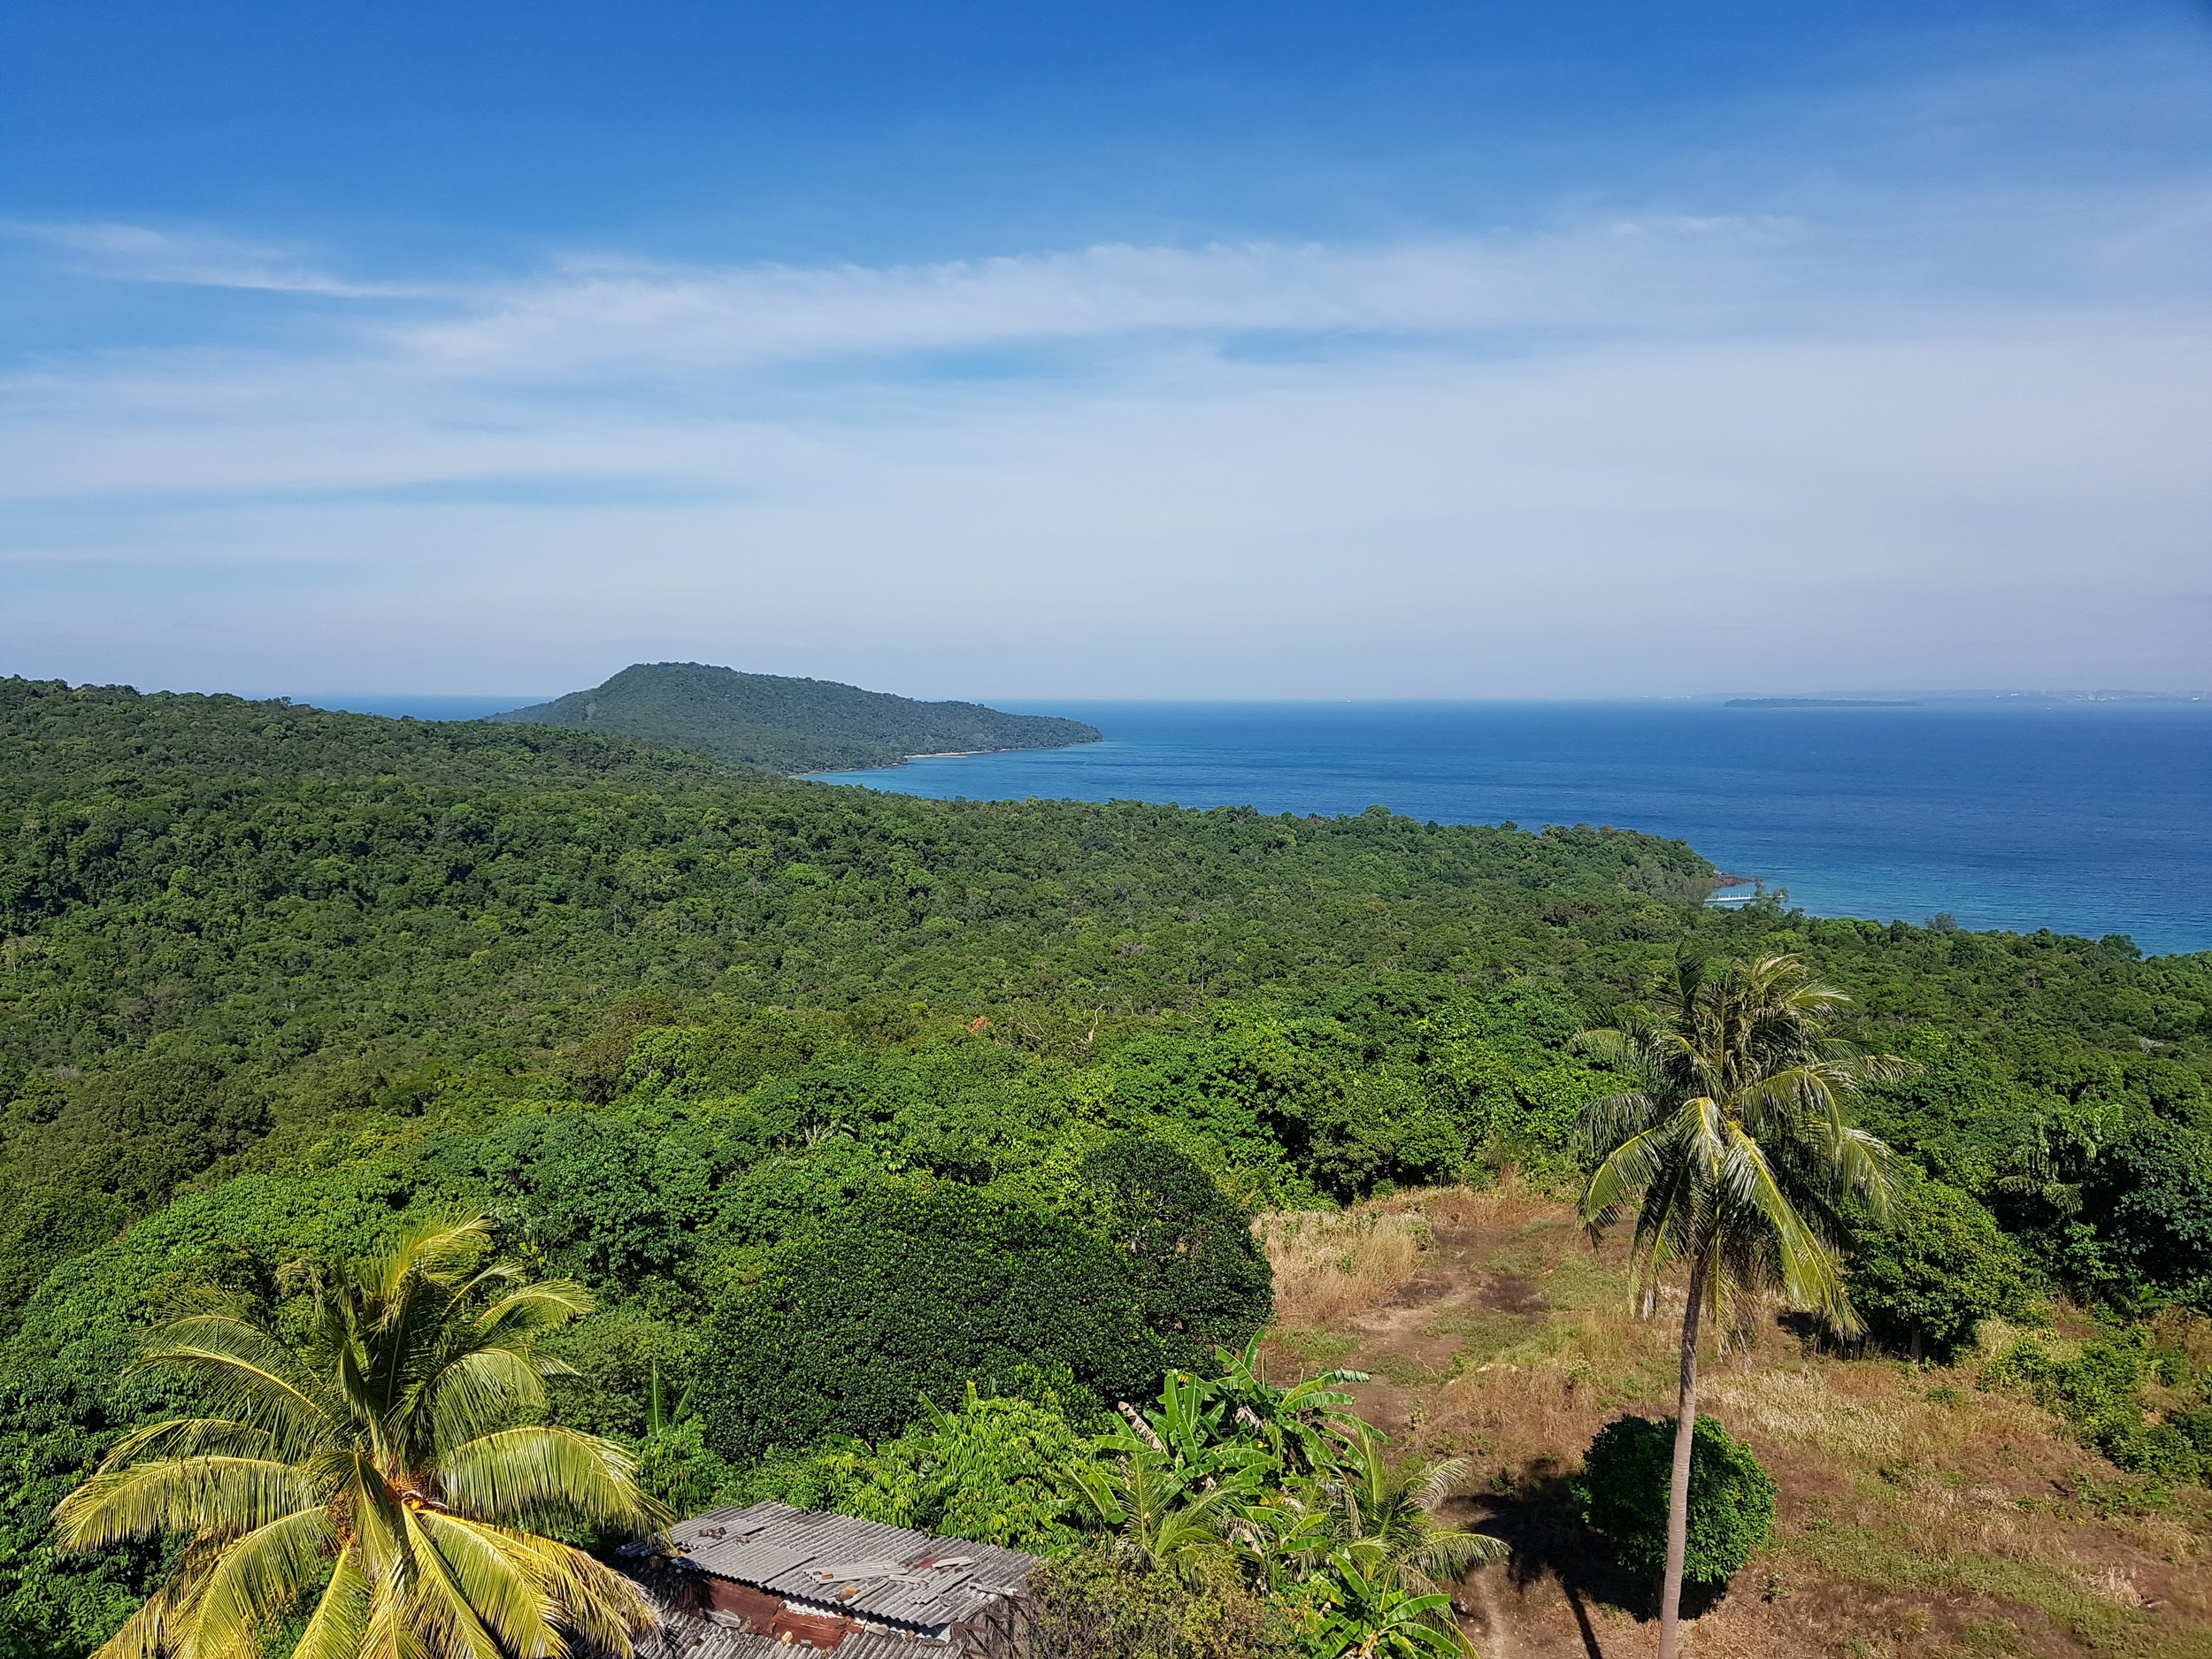 View from the lighthouse on Koh Rong Samloem island